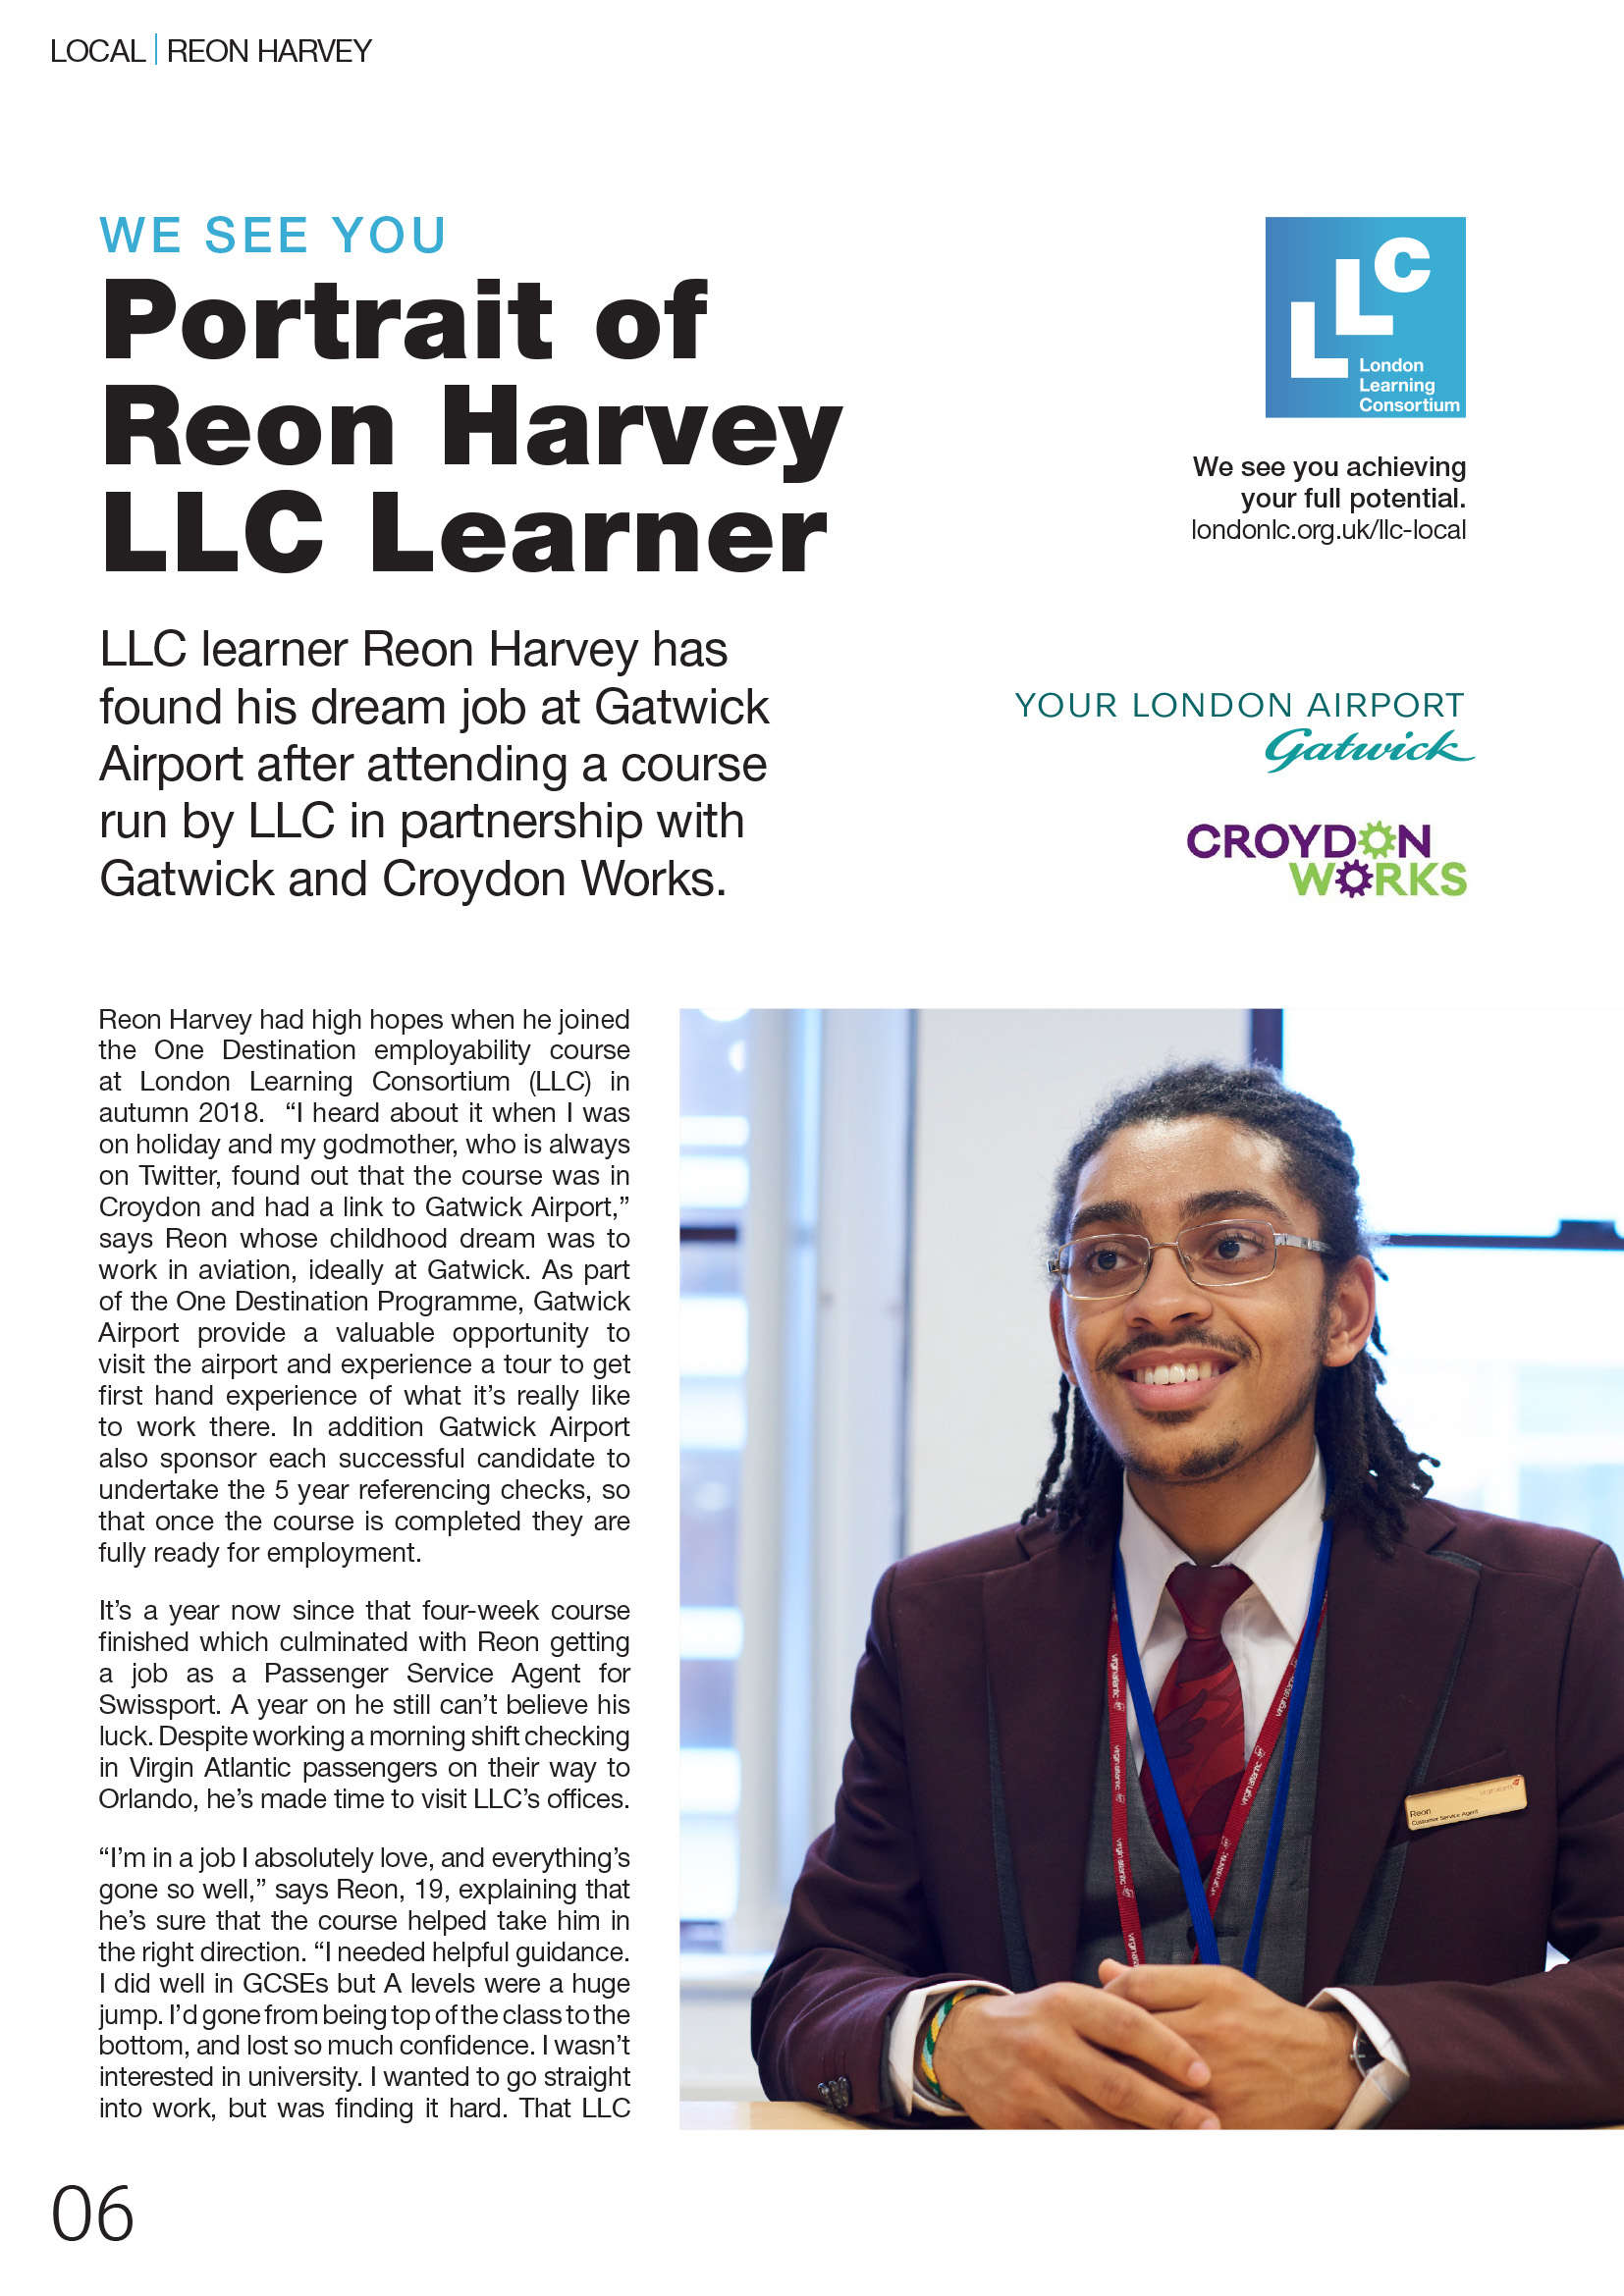 Portrait of Reon Harvey London Learning Consortium Learner